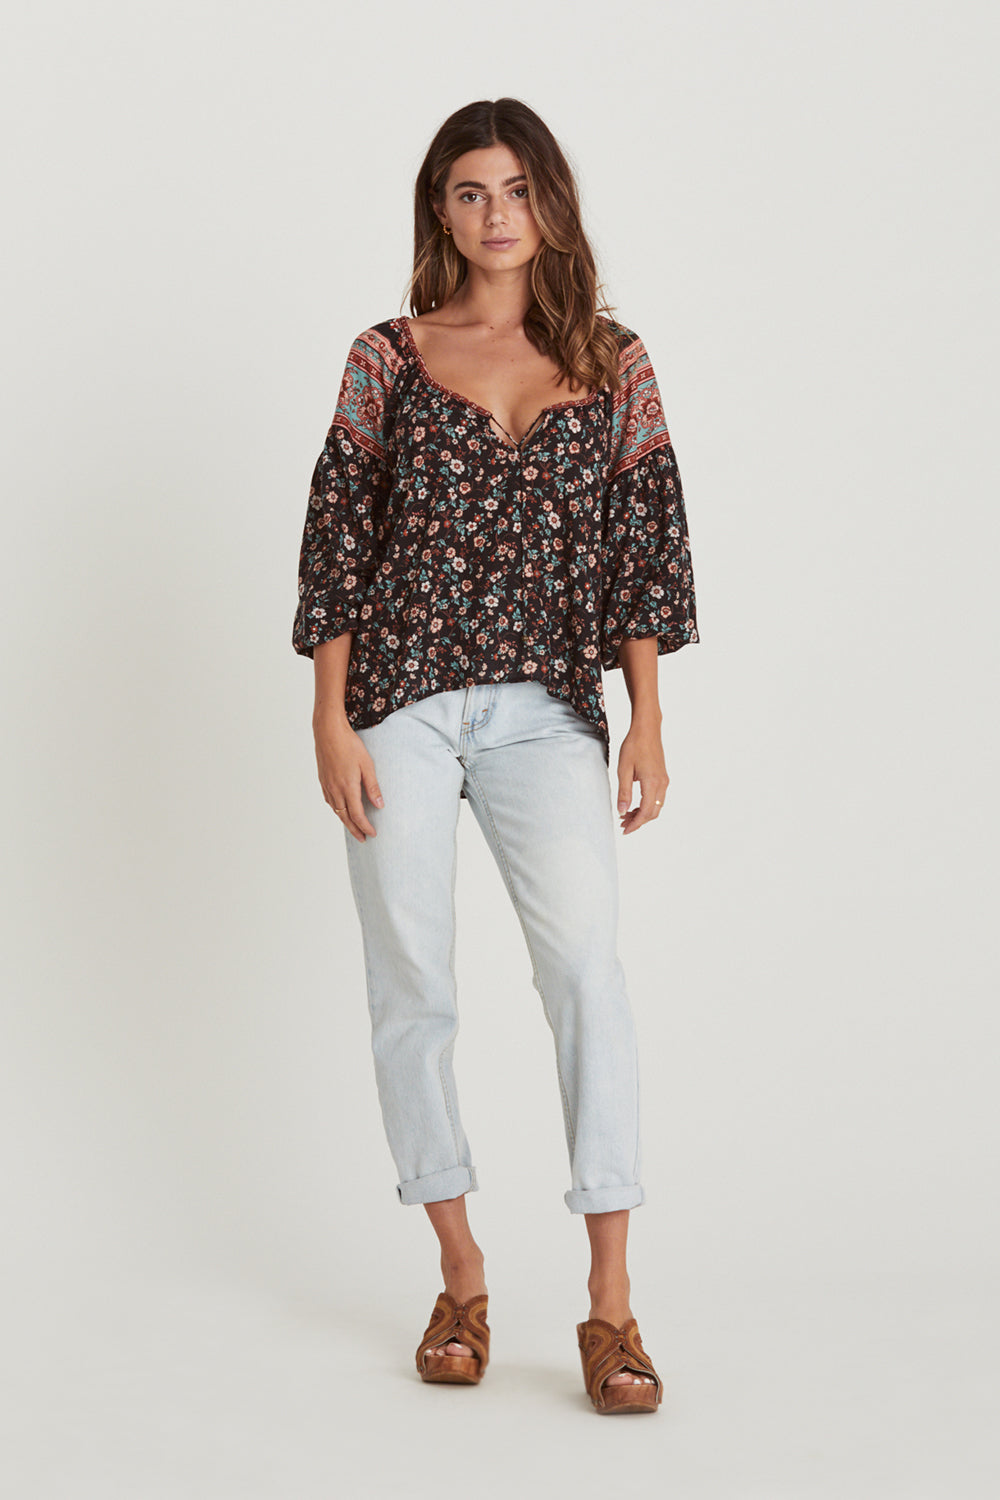 Camilla Blouse in Midnight Blooms